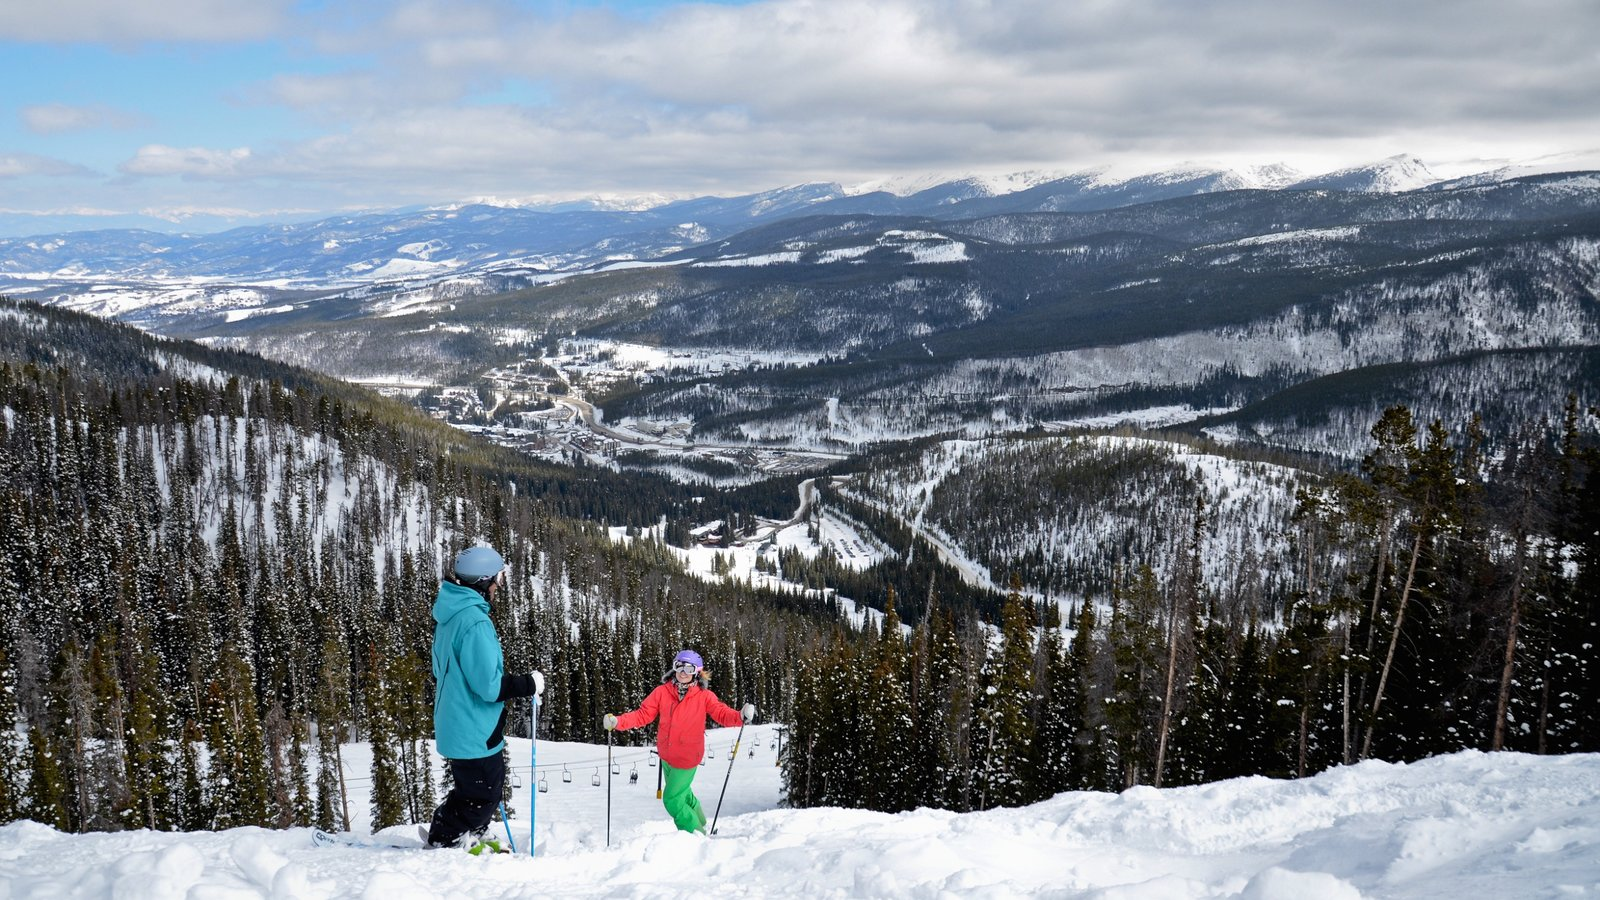 nature pictures: view images of winter park ski resort